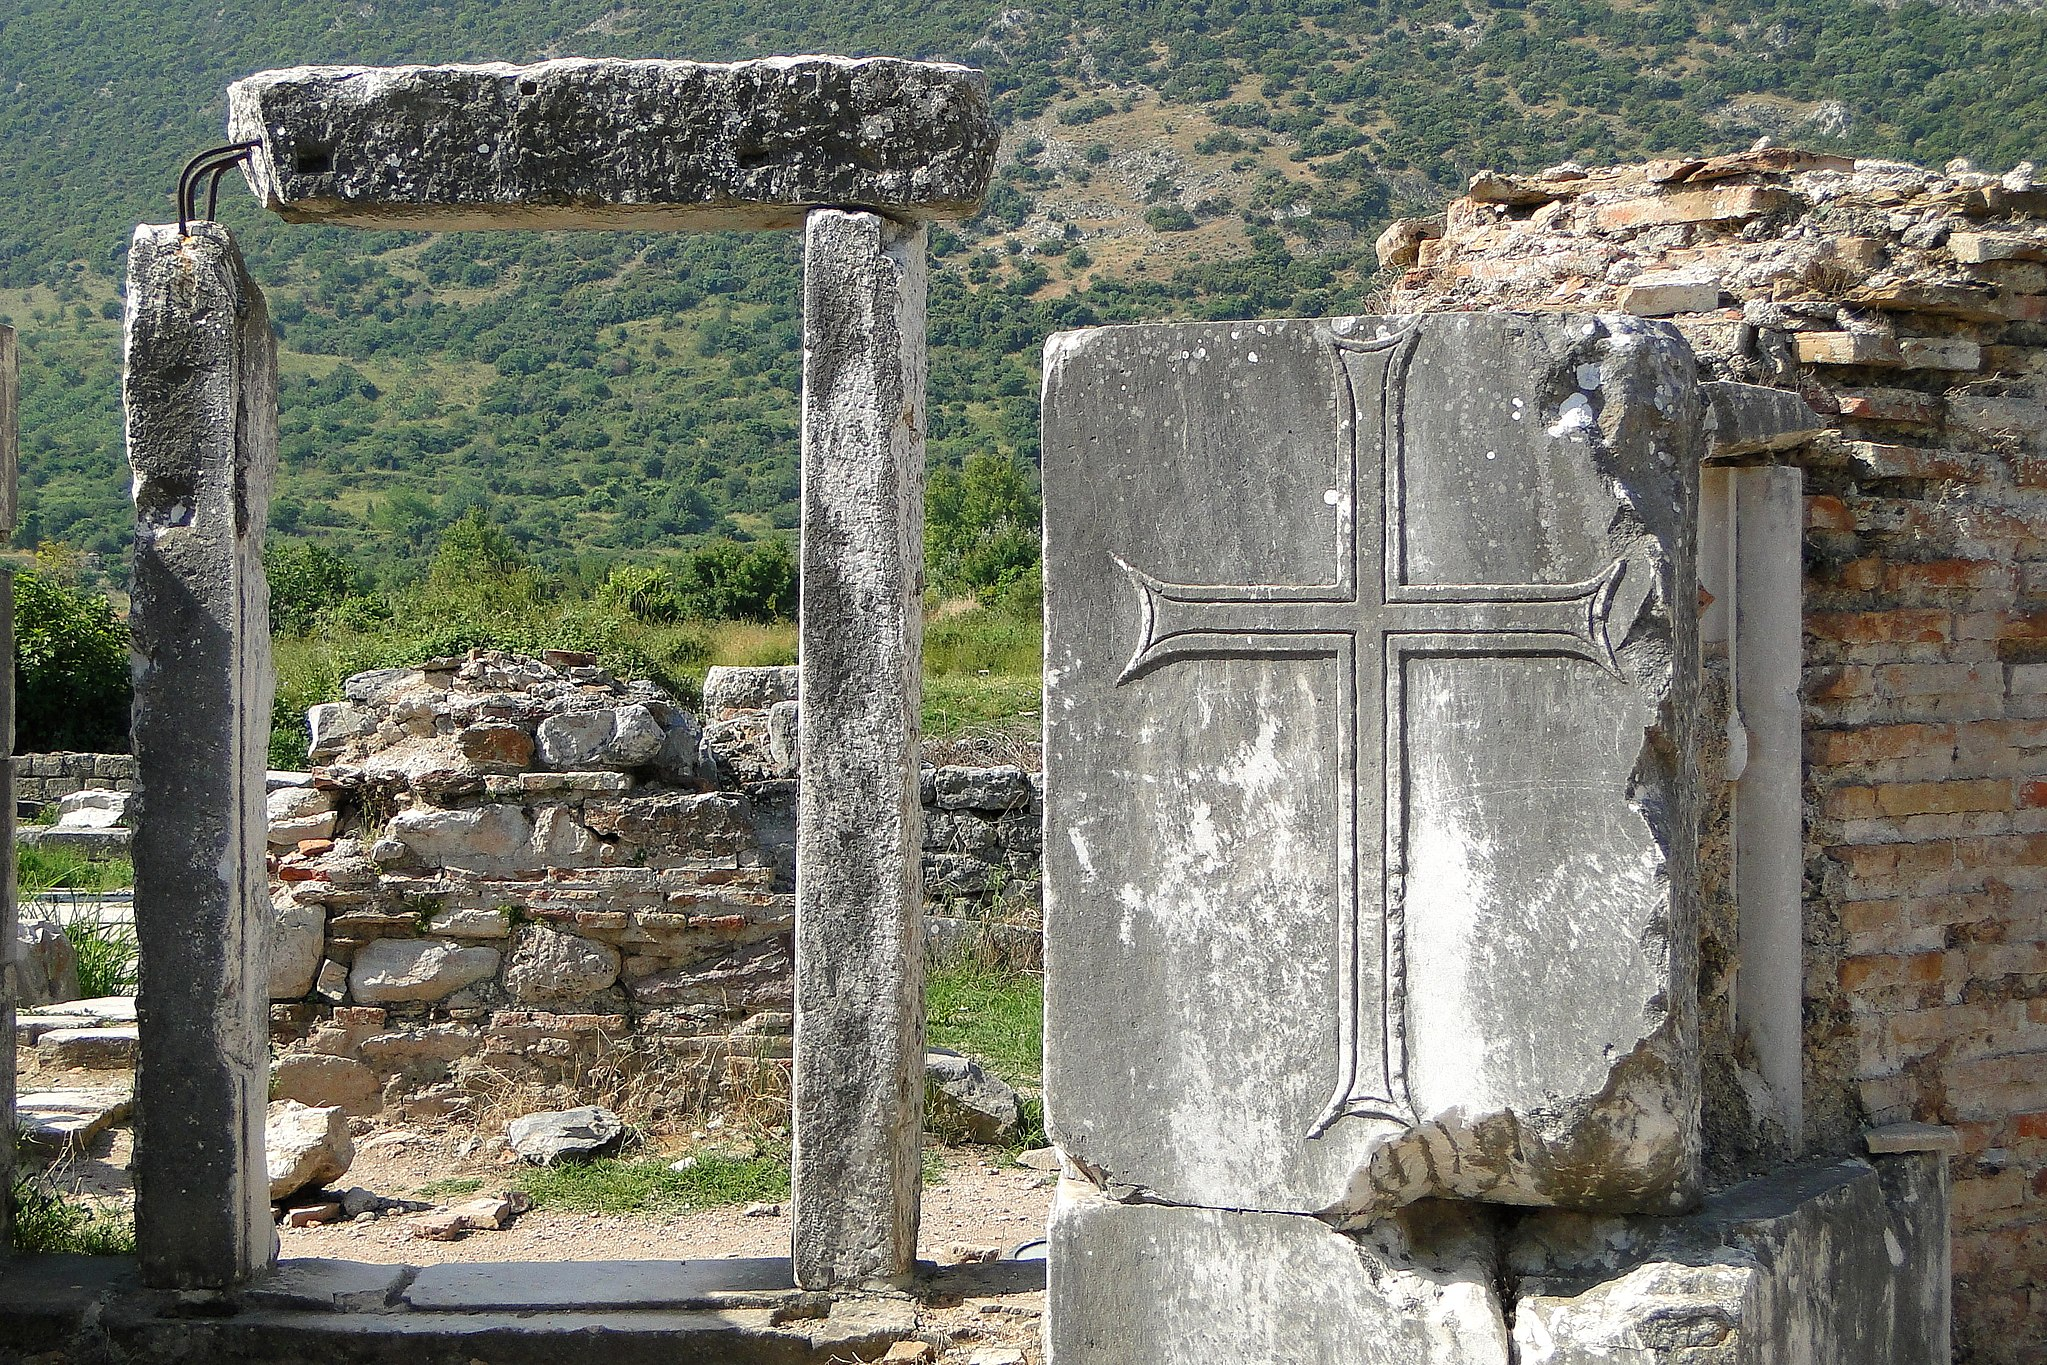 Ruins of the Church of the Theotokos, site of the Council of Ephesus, by Adam Jones from Kelowna, BC, Canada [CC BY-SA 2.0 (https://creativecommons.org/licenses/by-sa/2.0)], via Wikimedia Commons